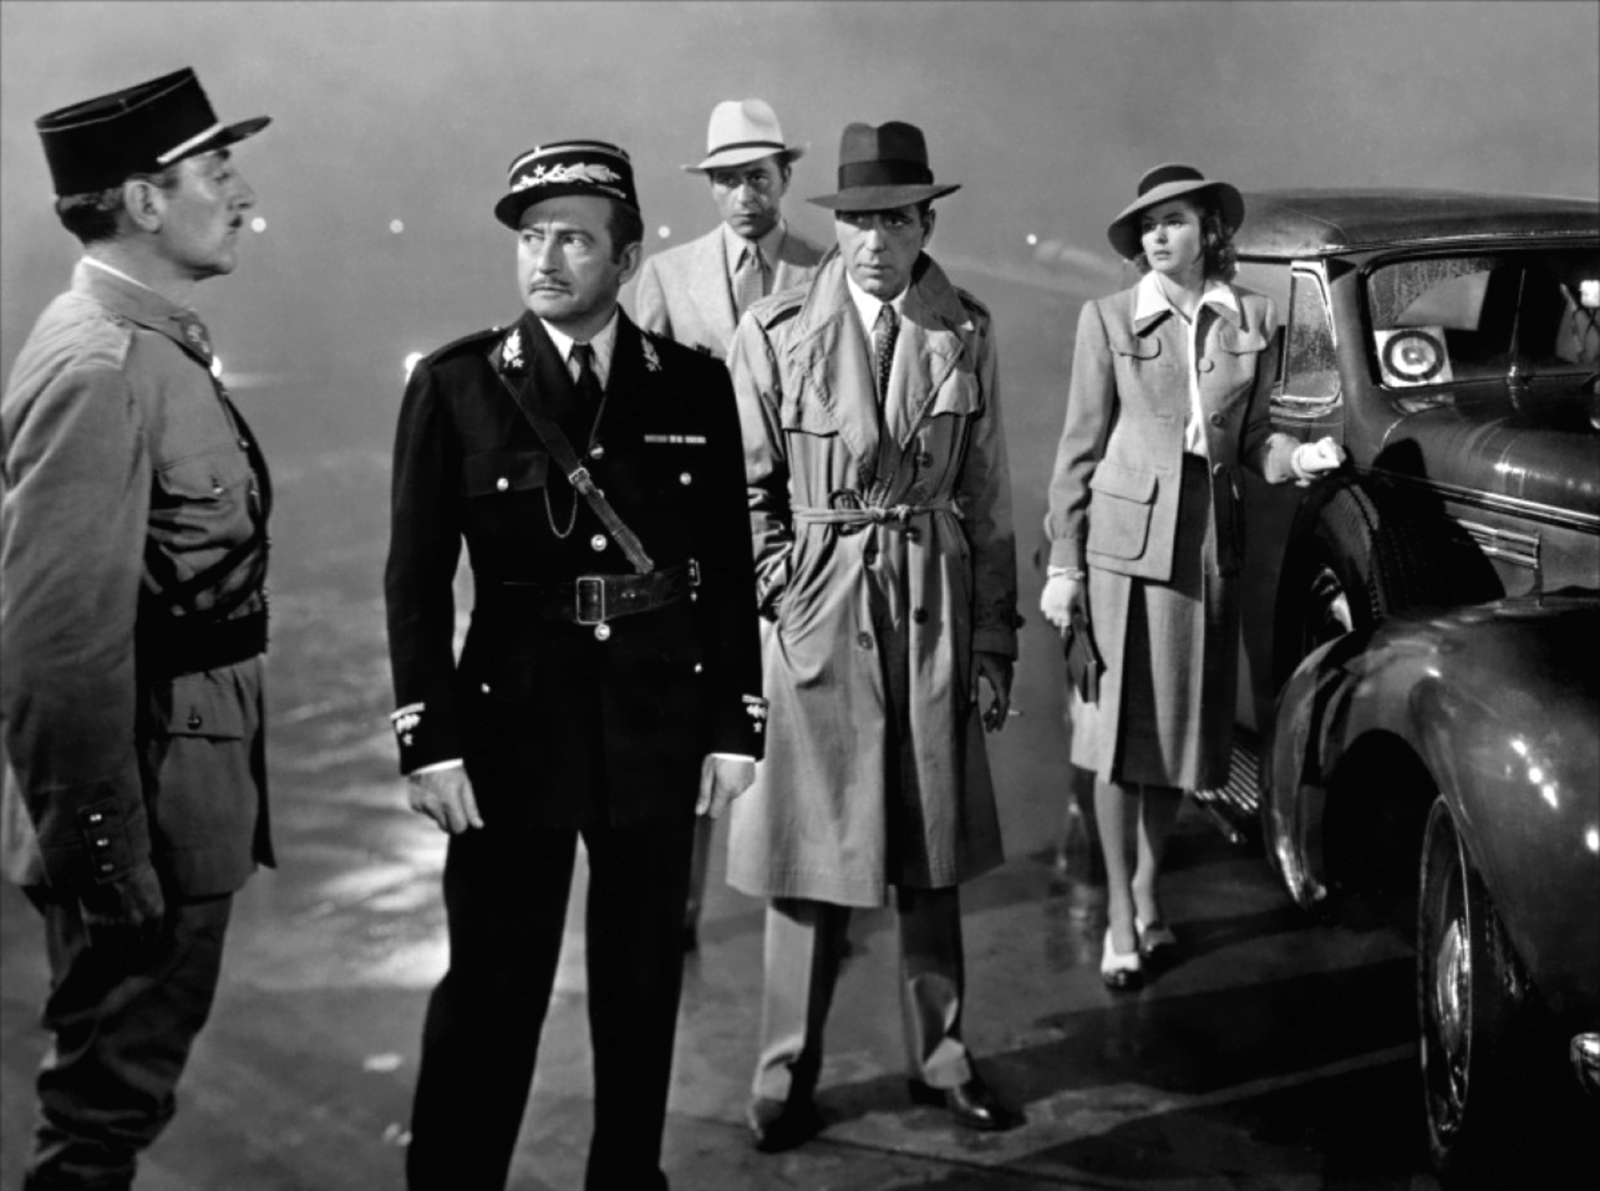 an analysis of the old classic noir film casablanca directed by michael curtiz in 1942